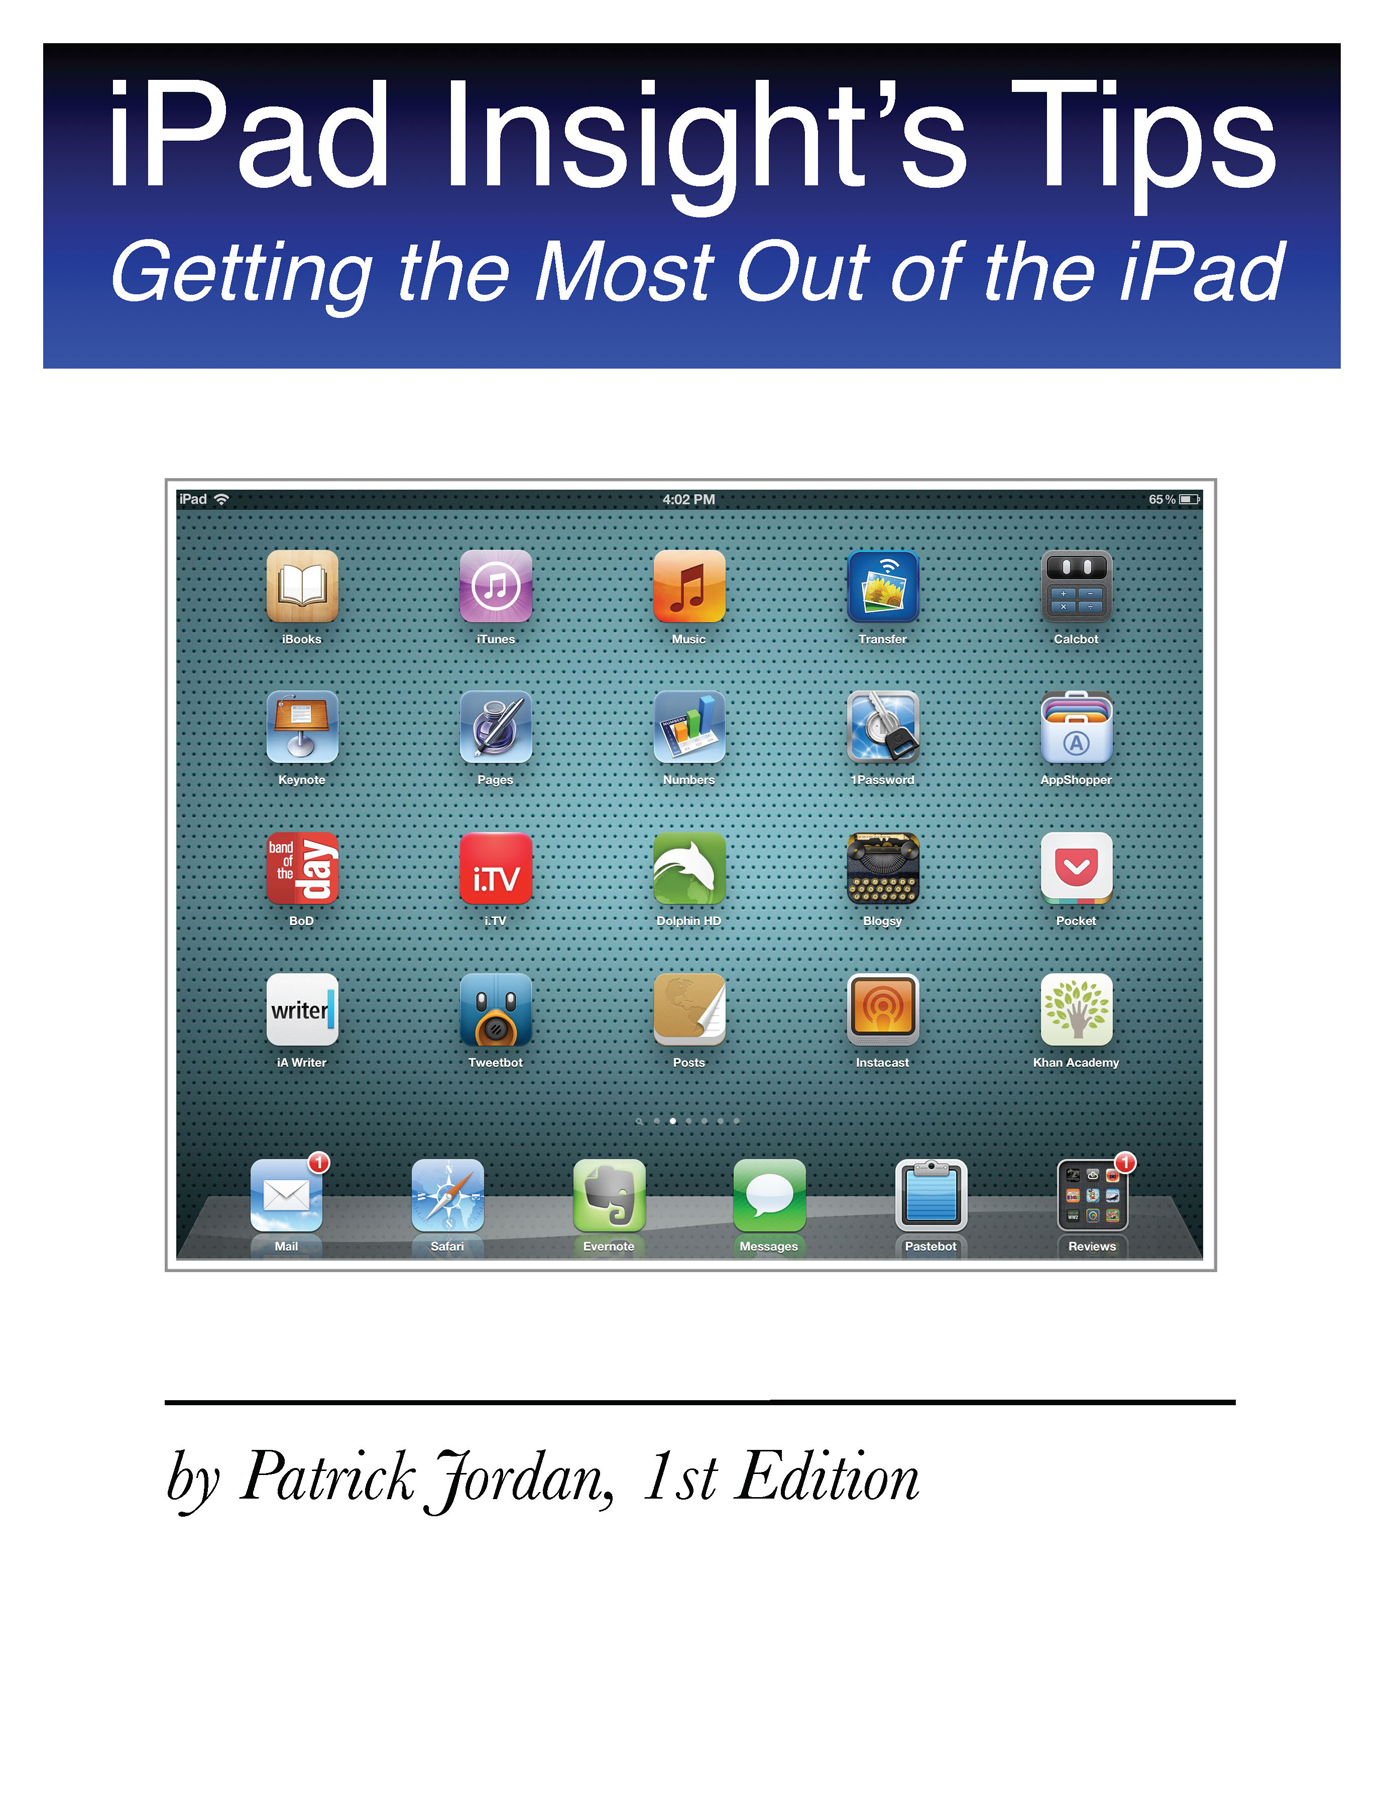 iPad Insight's Tips: Getting the Most Out of the iPad By: Patrick Jordan